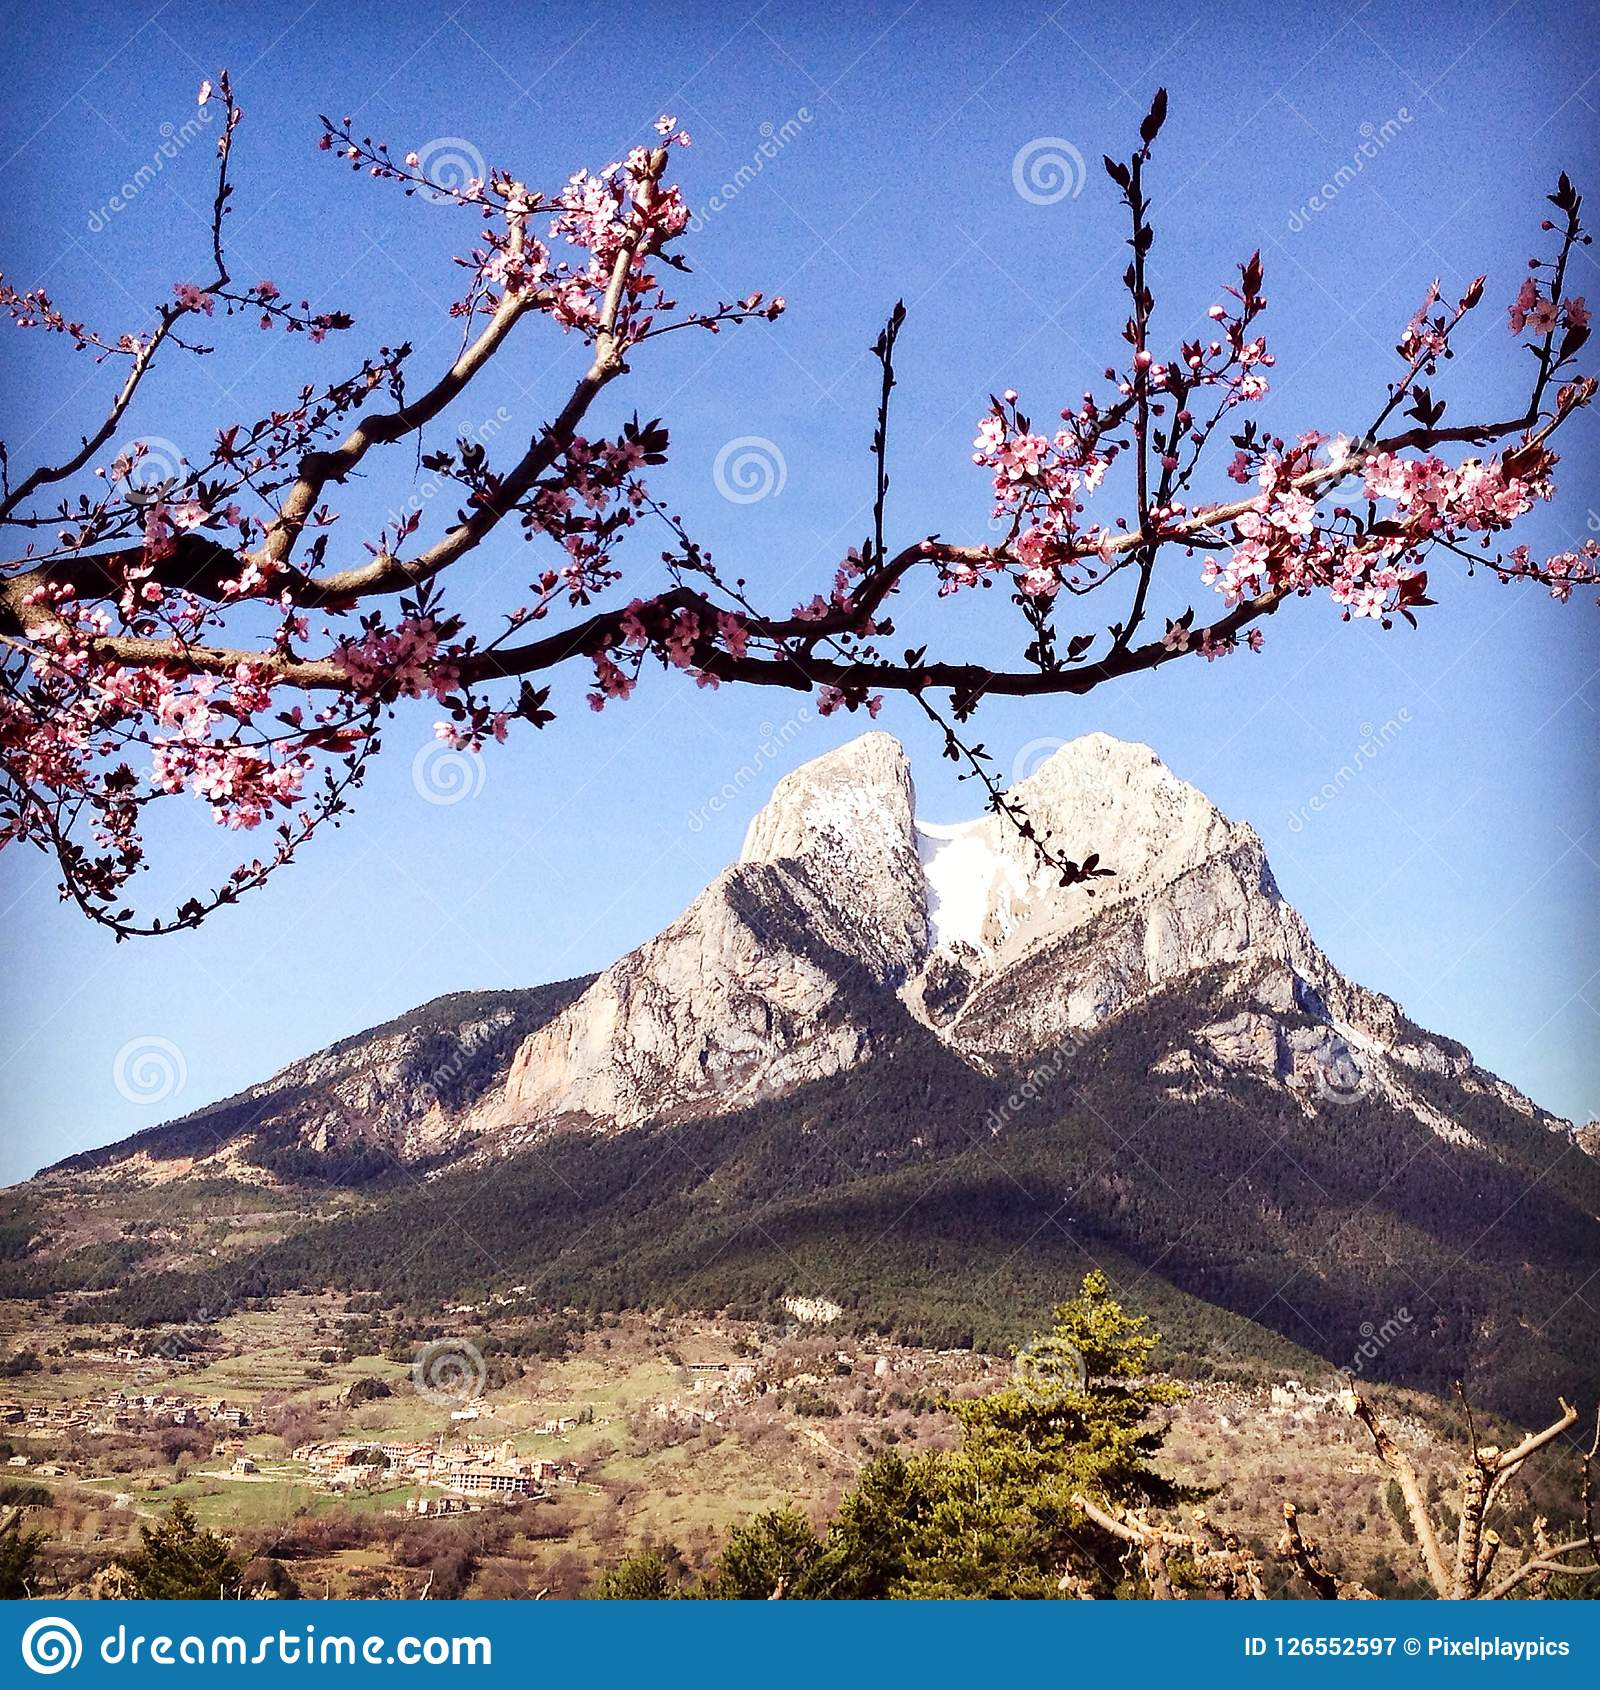 Pedraforca, Spain Beautiful mountain with the pink apple tree blossoms